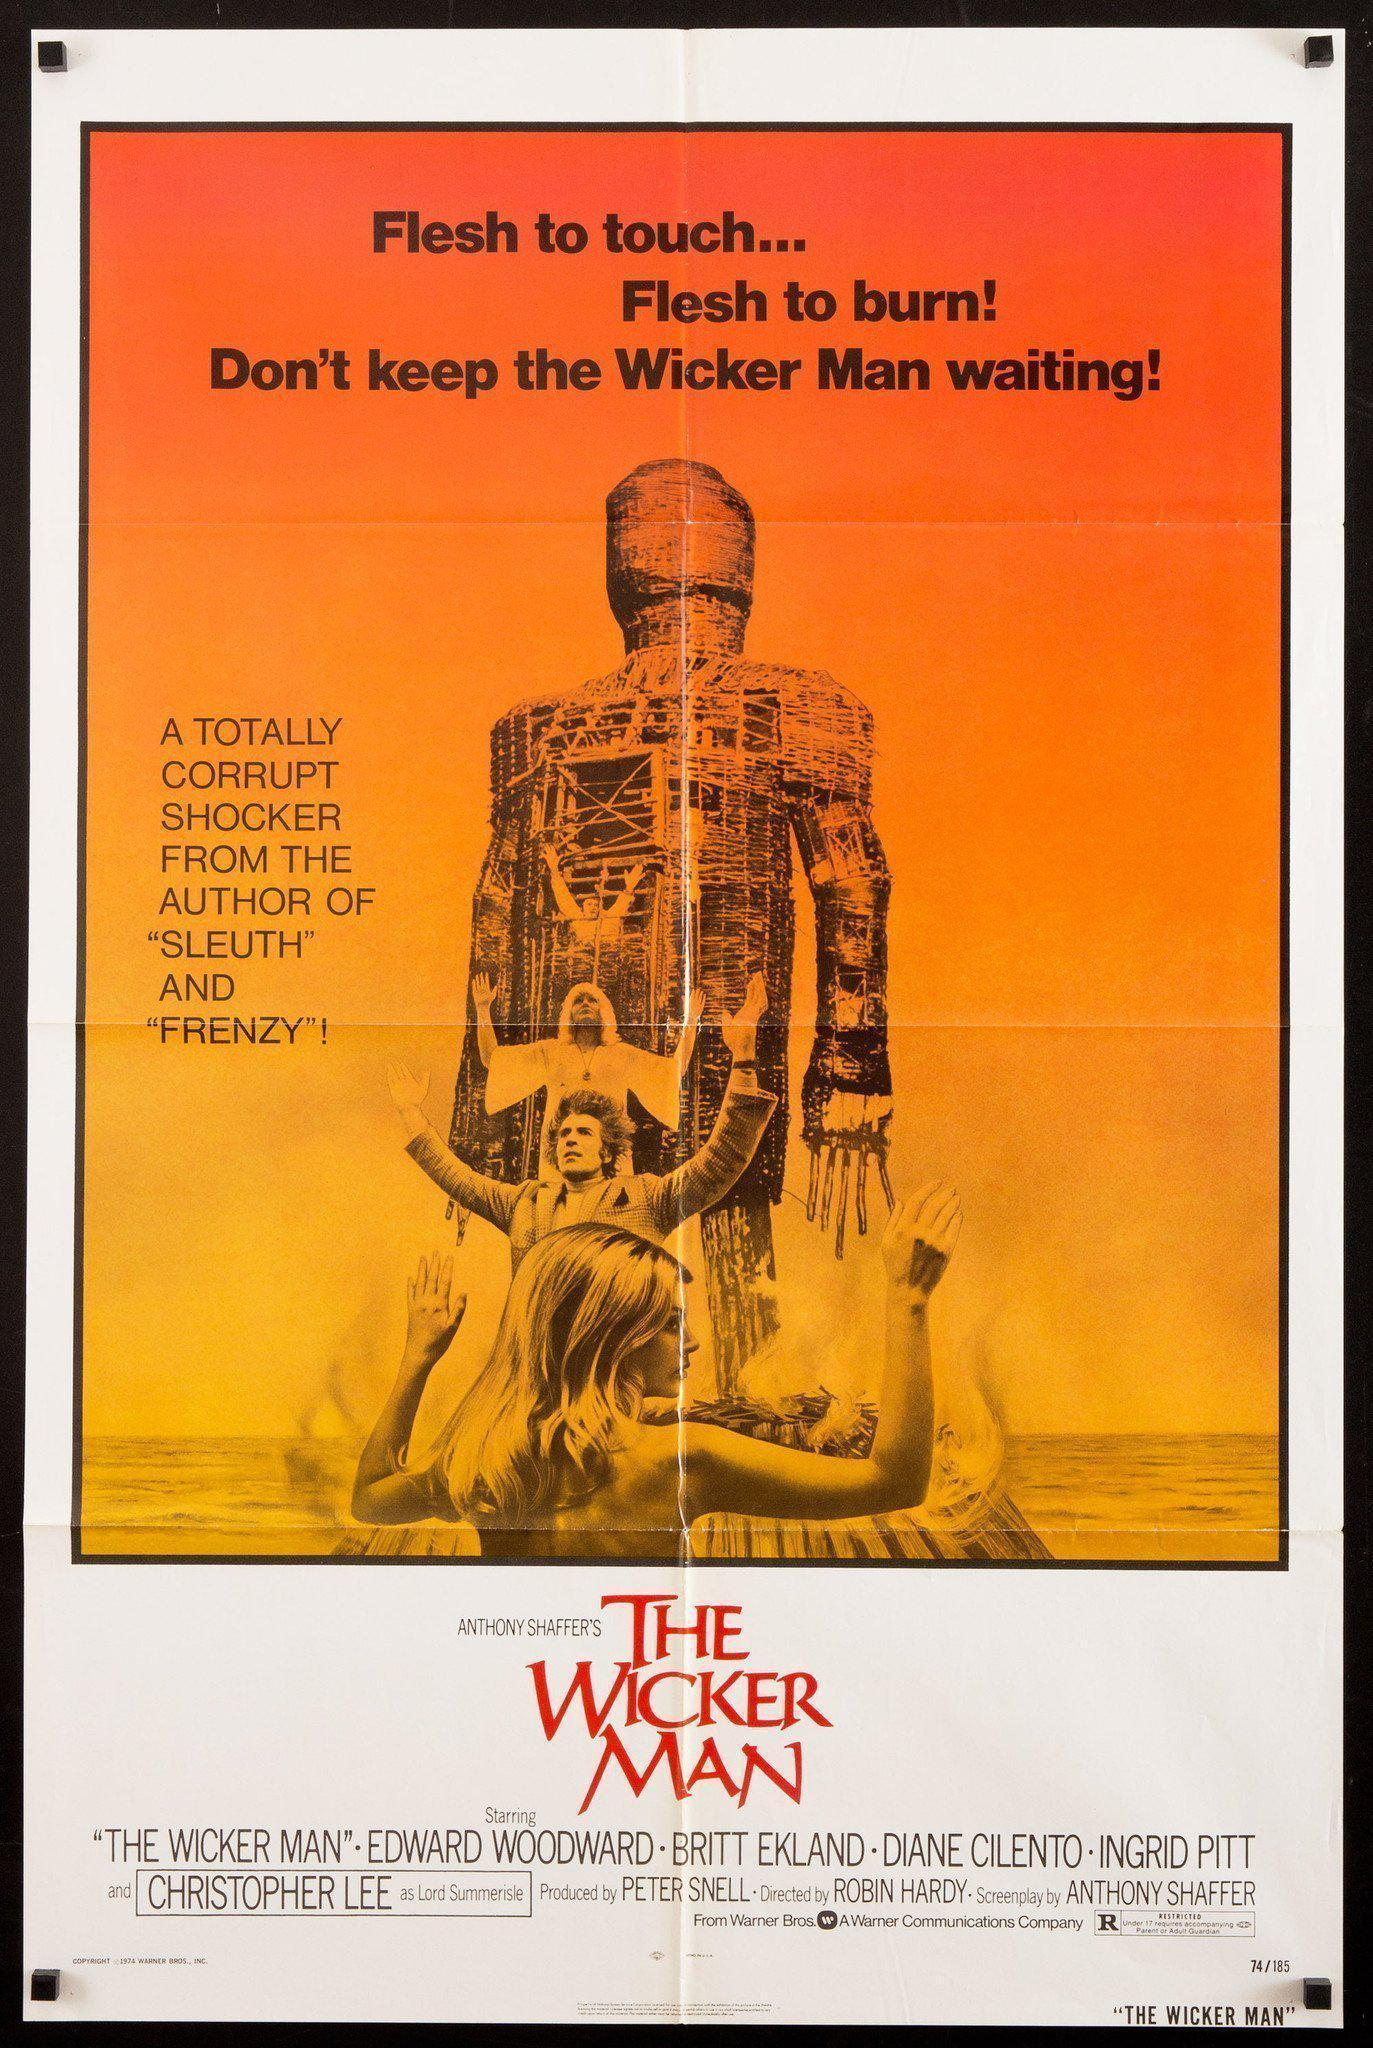 The Wicker Man (1973) - Directed By: Robin HardyStarring: Edward Woodward, Christopher Lee, Diane CilentoRated: RRun Time: 1h 28mTMM Score: 4 StarsStrengths: Theme, Story, ProtagonistWeakness: None